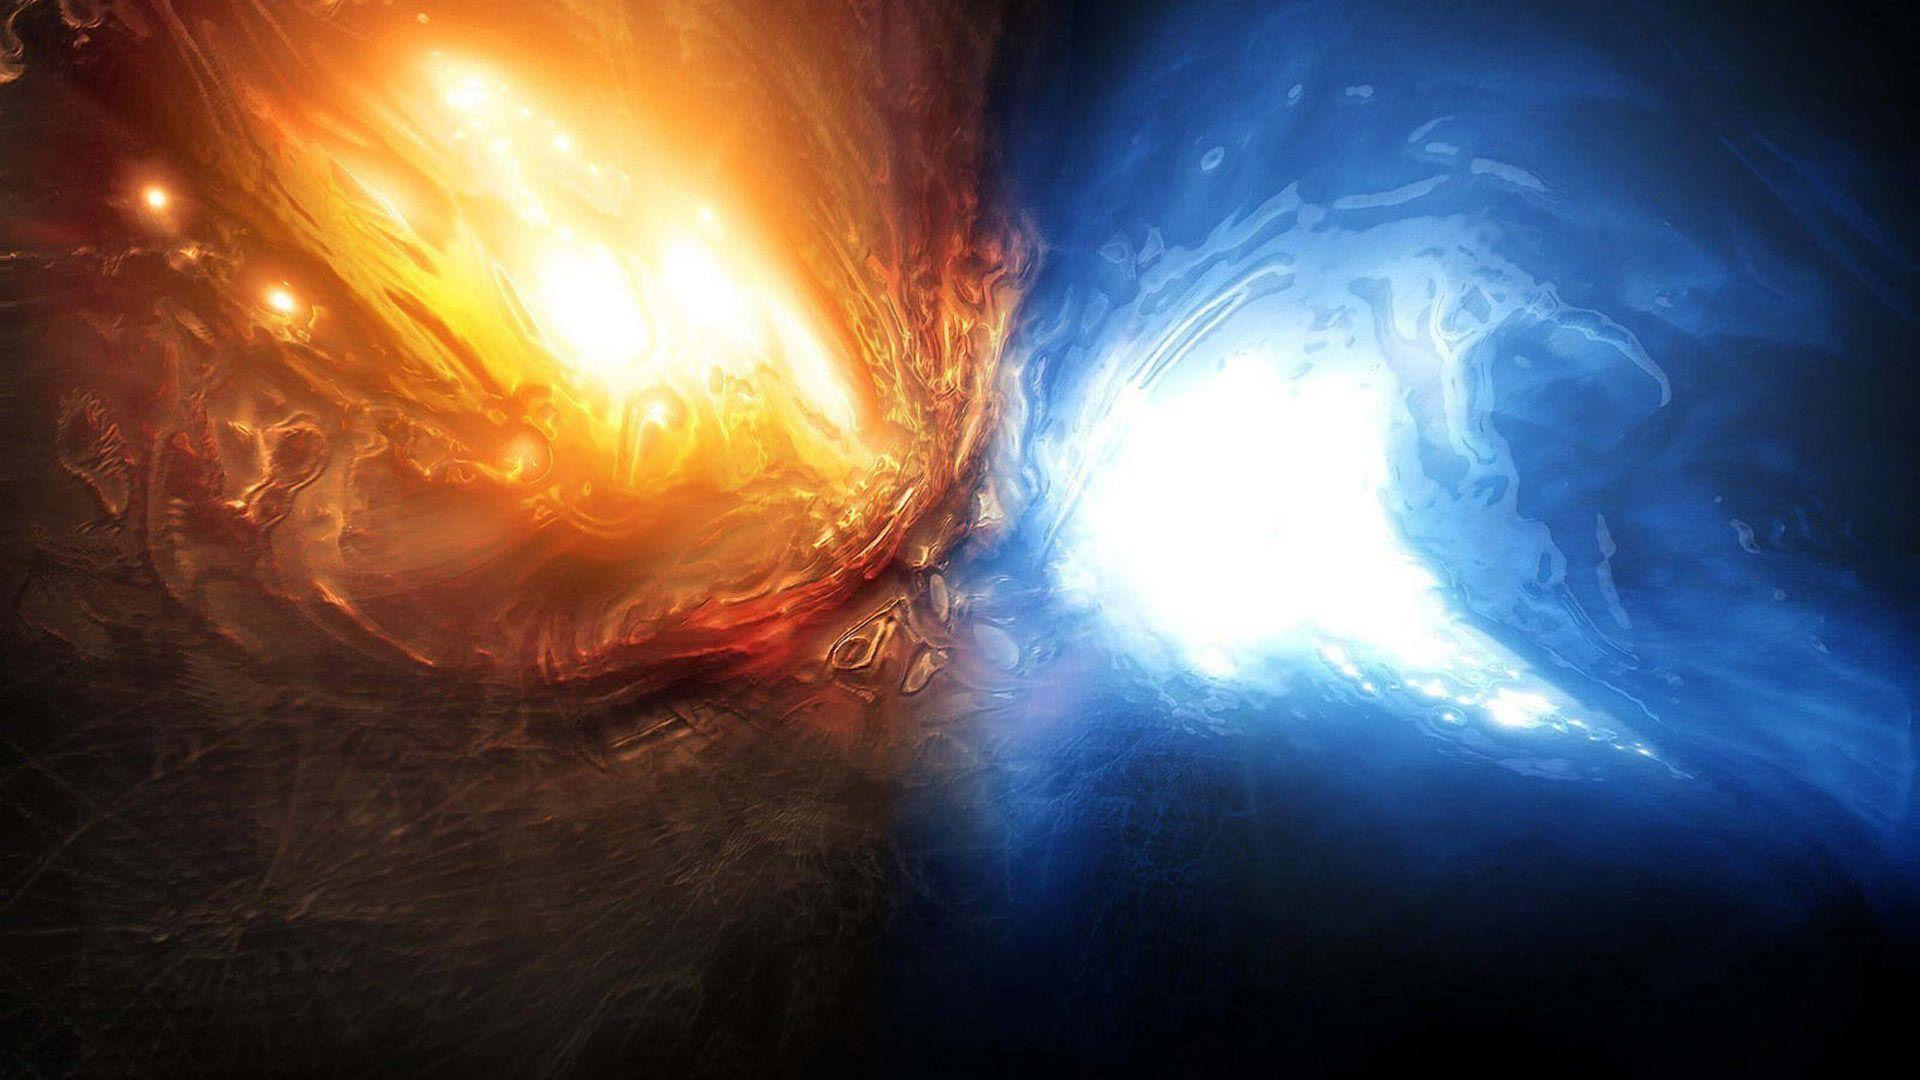 hd wallpapers fire and water abstract